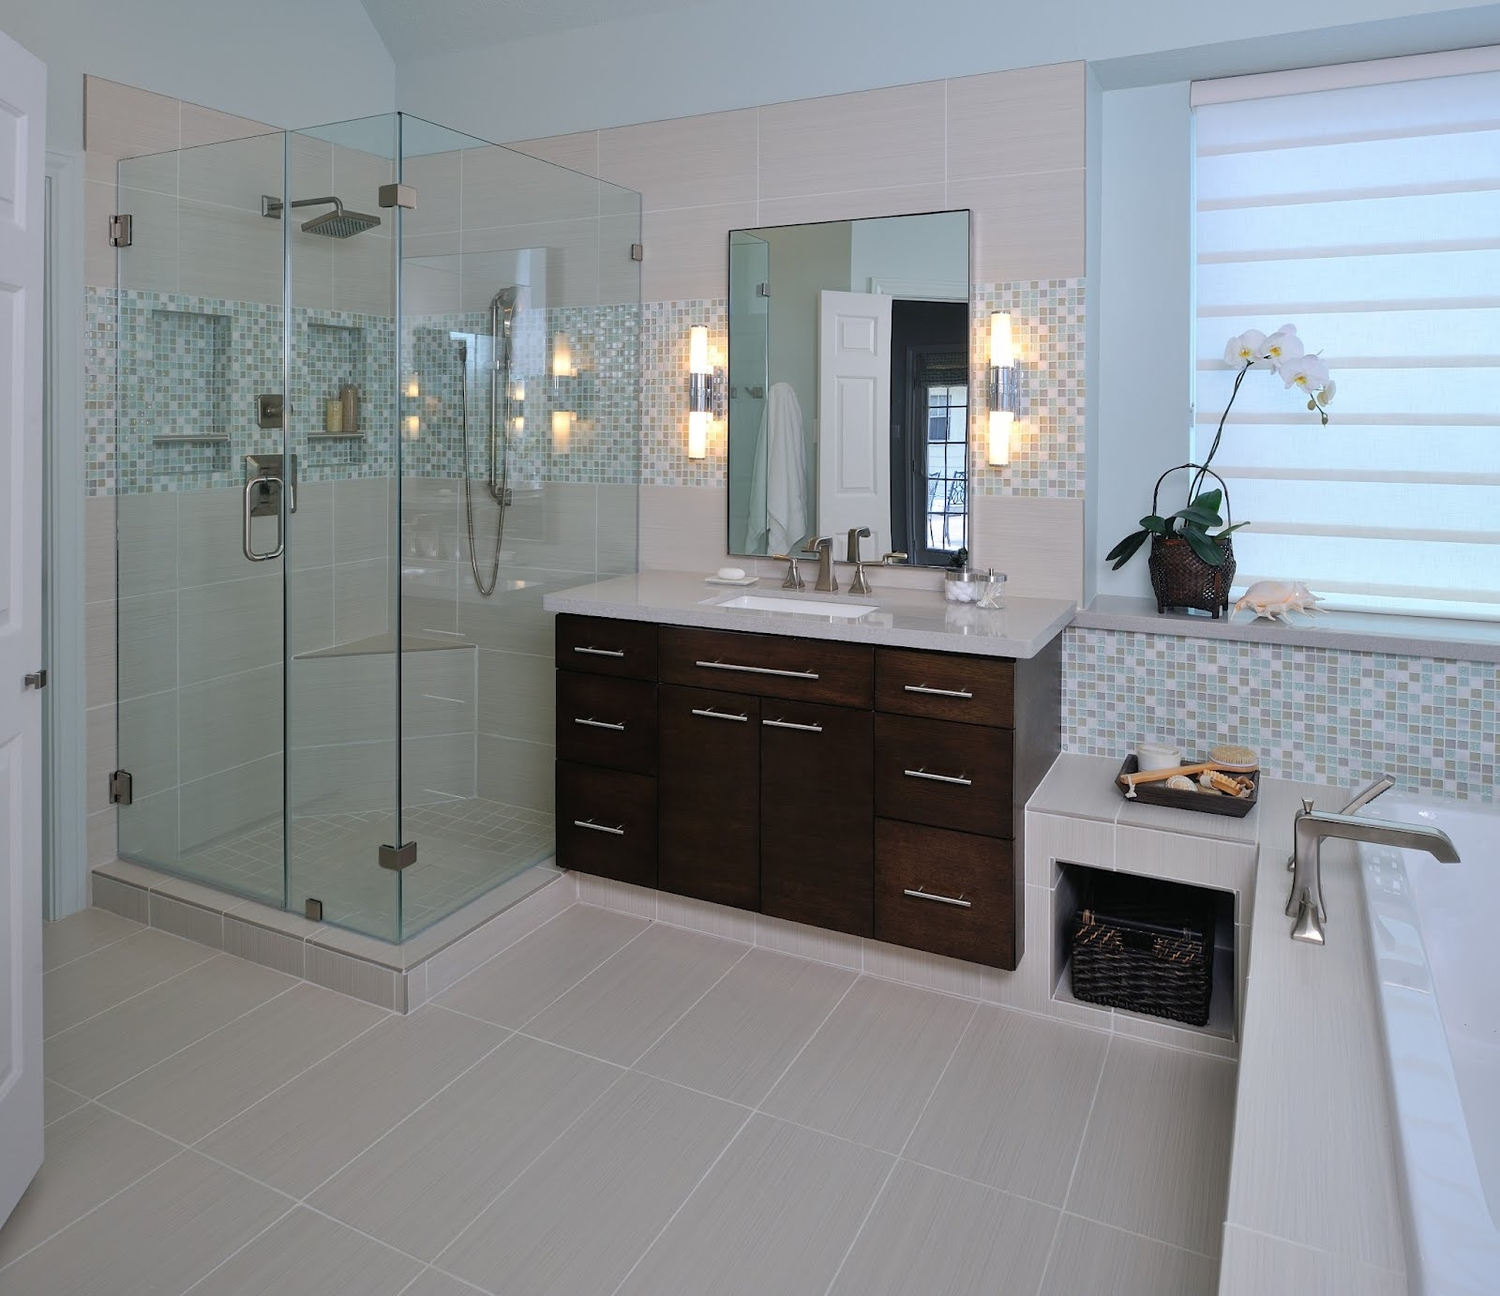 The granite gurus 8 beautiful master bathrooms for Amazing bathroom remodels